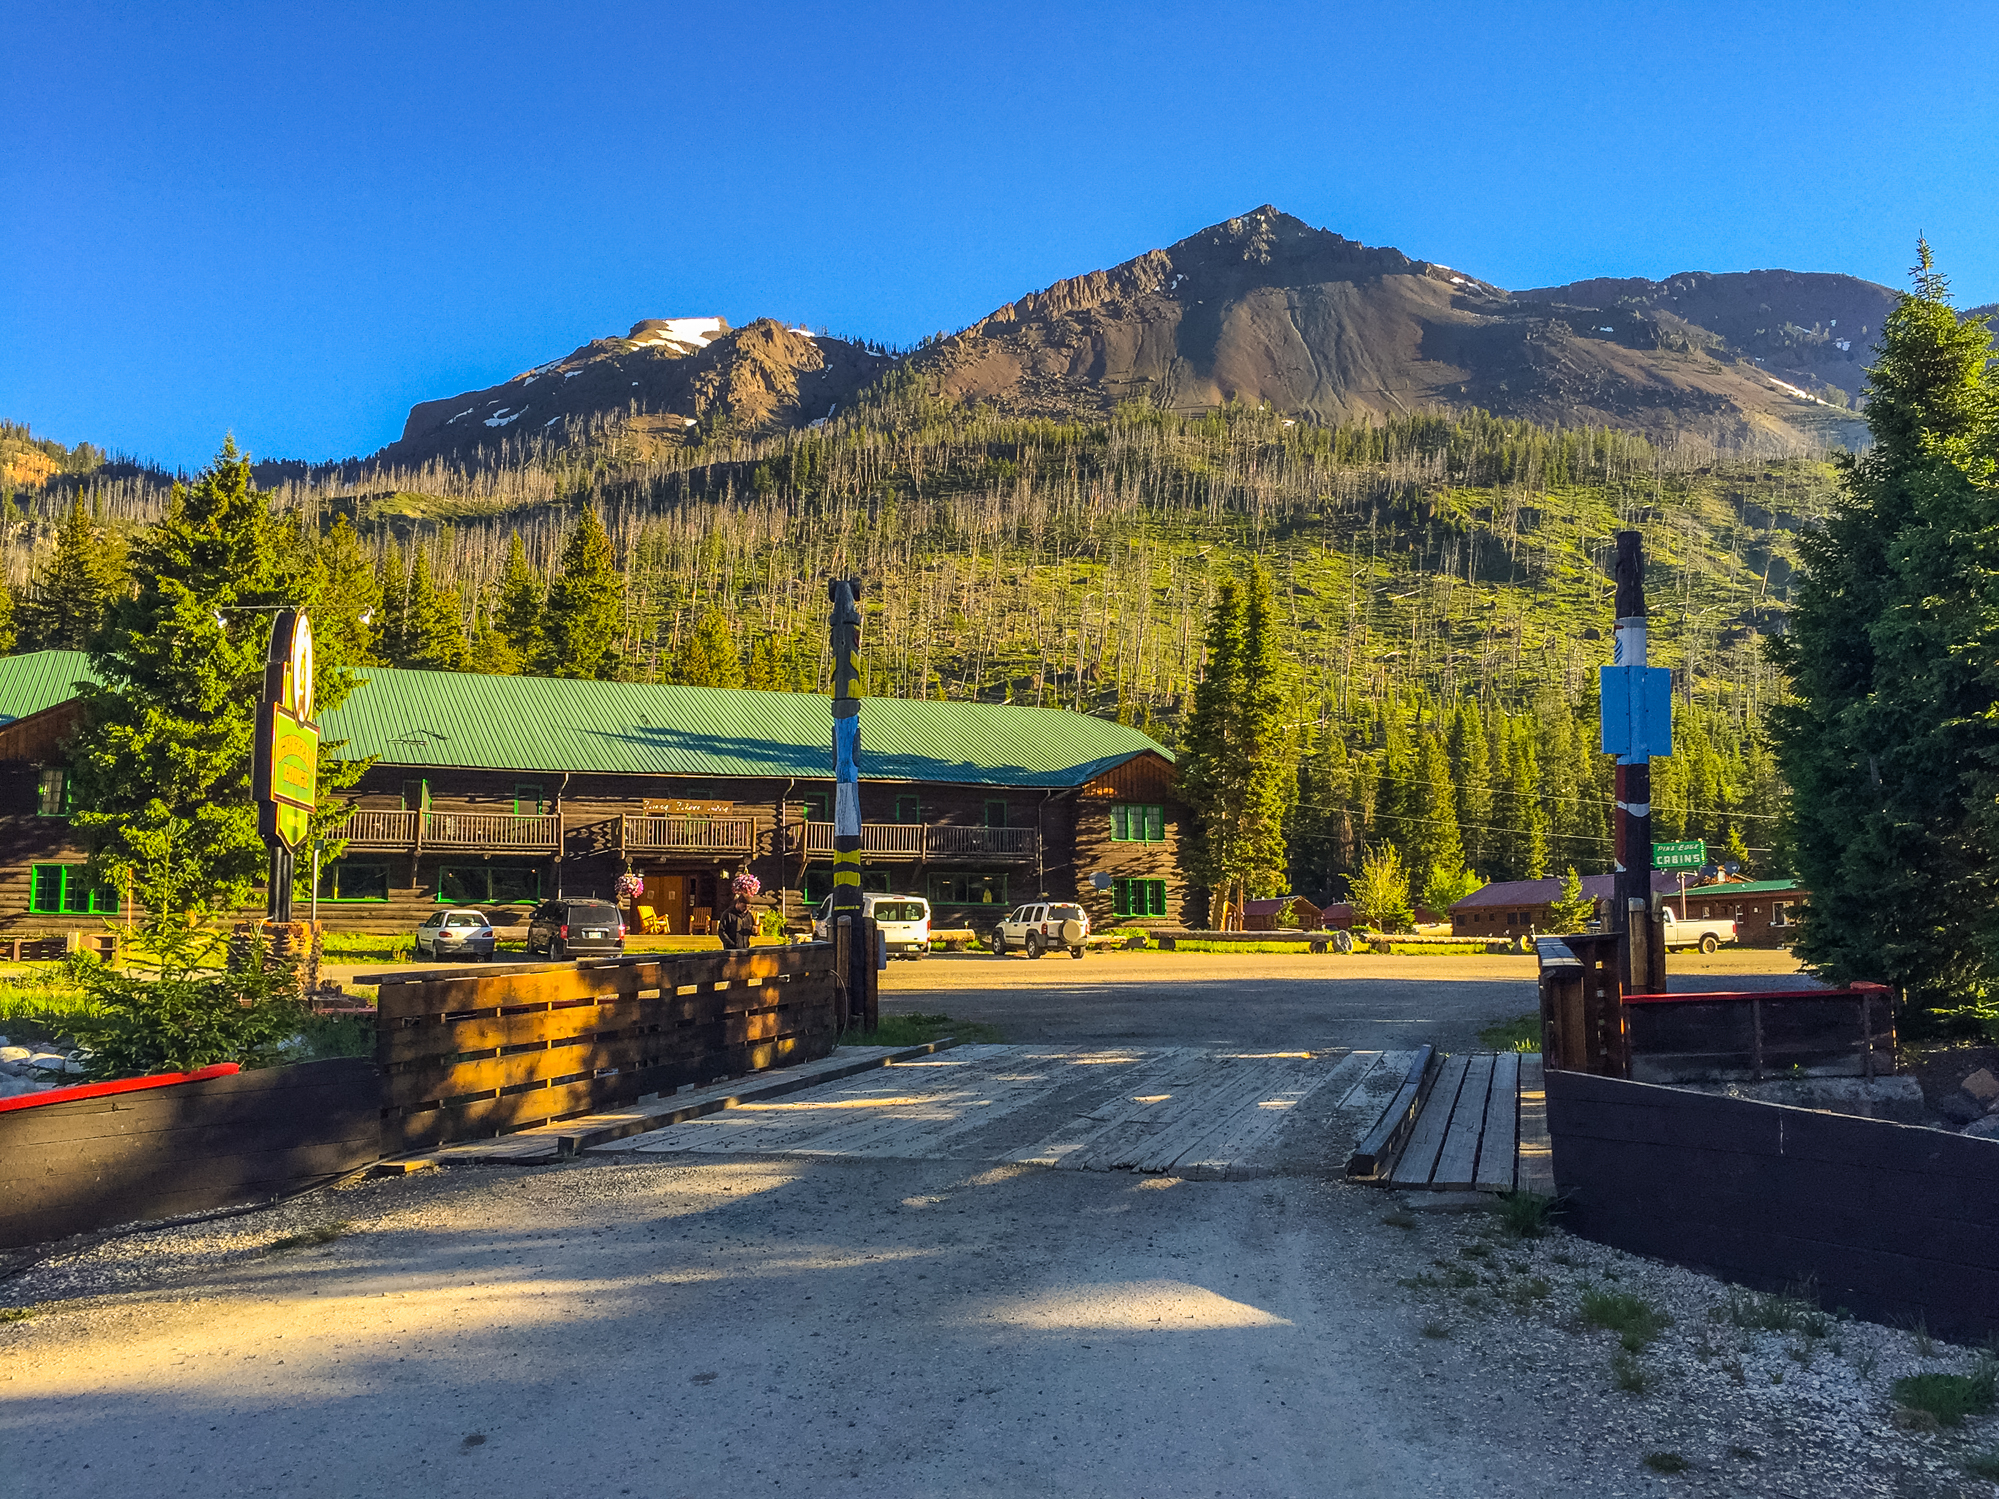 Grizzly Lodge-Cooke-Silvergate Montana, Image # 0141